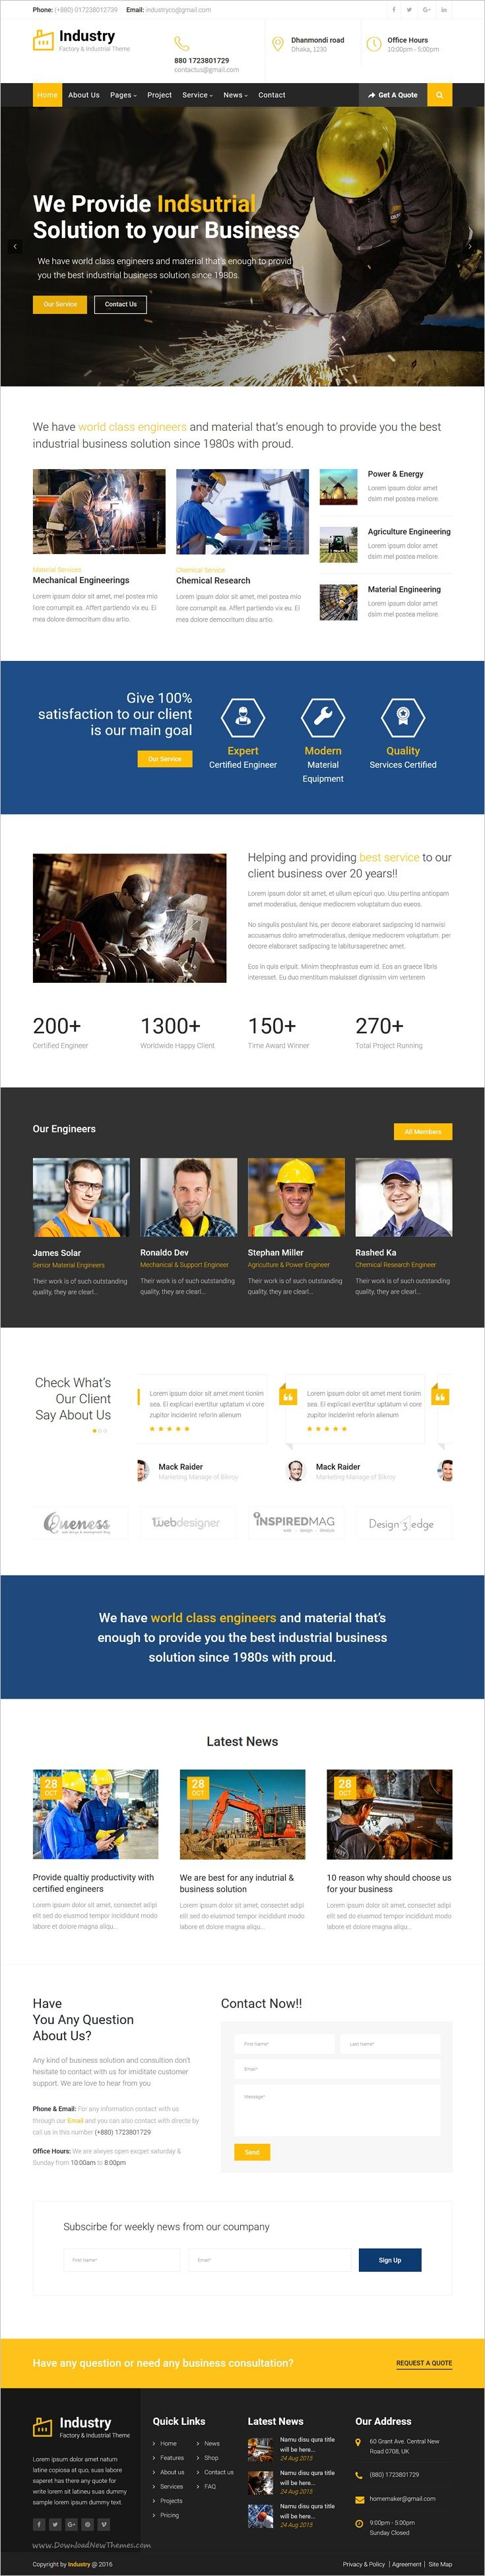 Industry is a wonderful #bootstrap #HTML template for🏭 Industrial, mechanical, #engineering, chemical industry, construction company, steel factory, Electrician, Plumbing industry and similar websites download now➩  https://themeforest.net/item/industry-factory-industrial-business-template/18923314?ref=Datasata